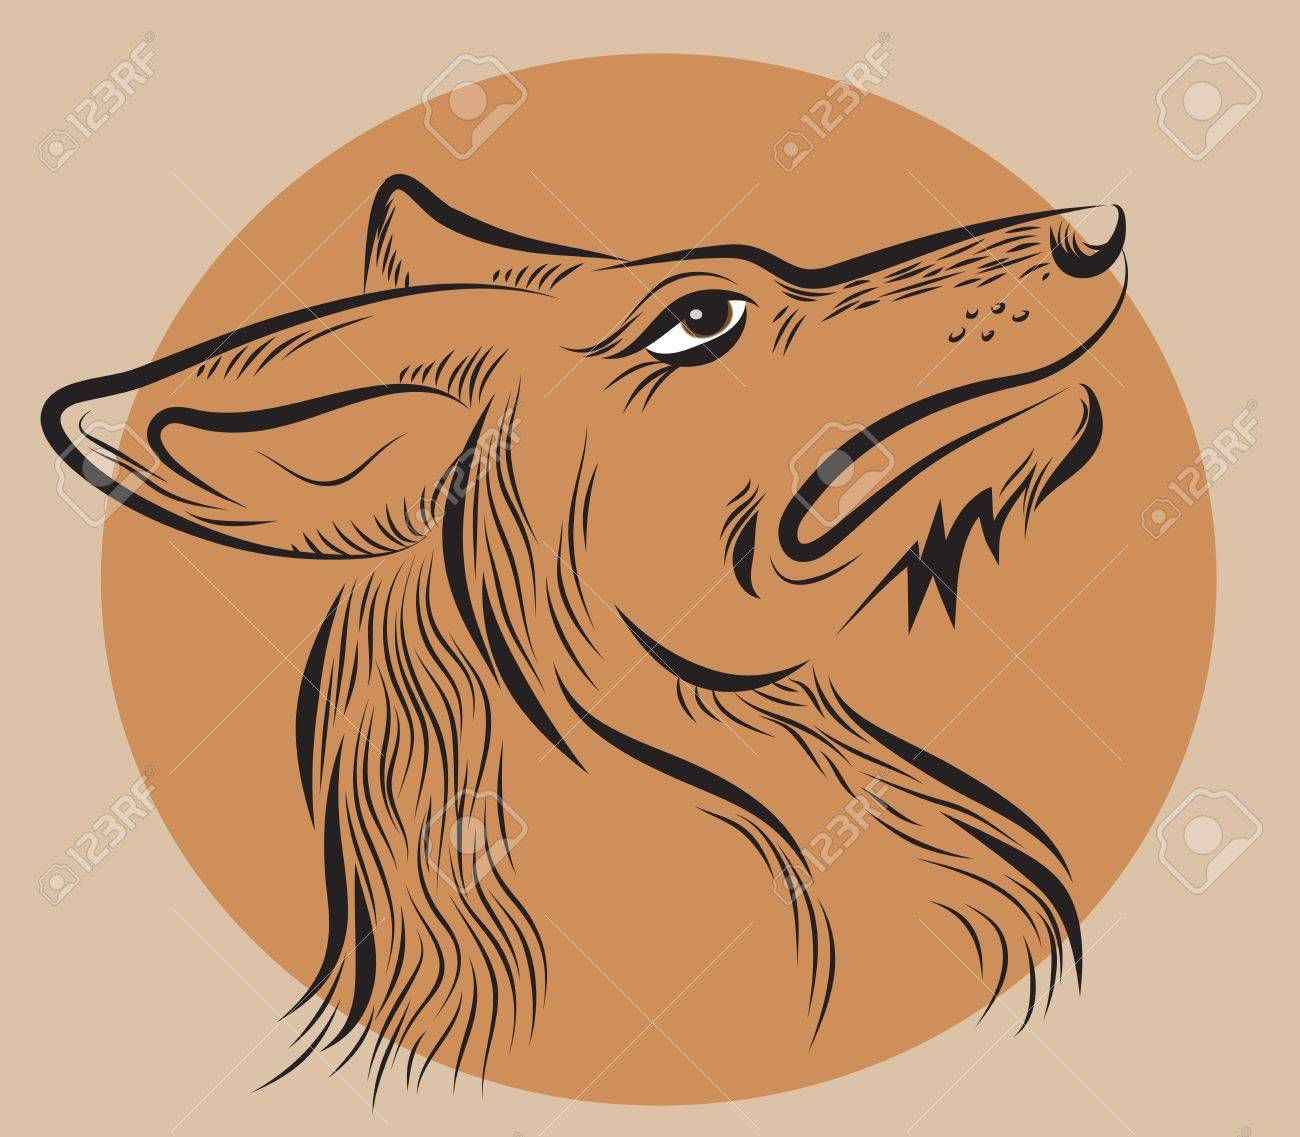 dog's head, drawn by hand  on a brown background Stock Vector - 14476487